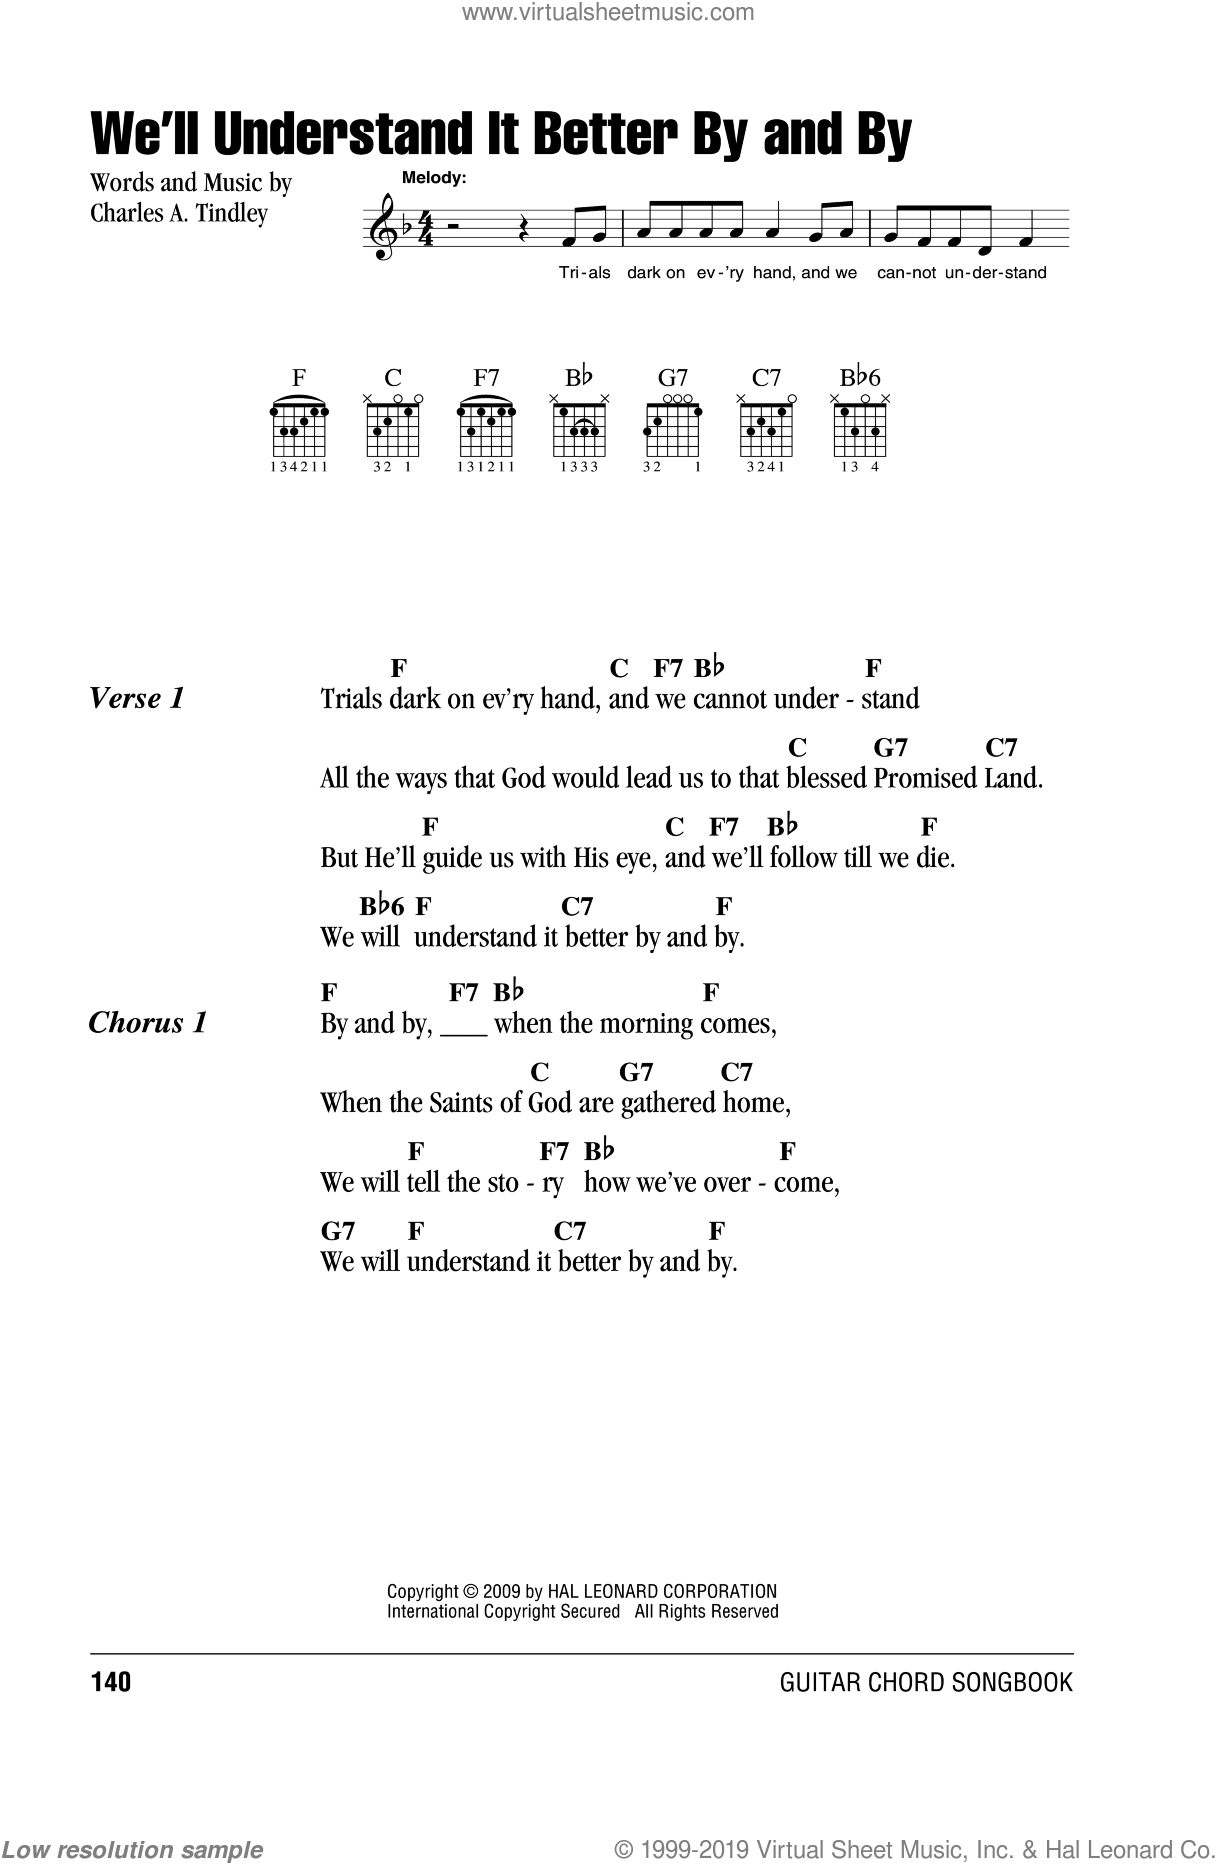 We'll Understand It Better By And By sheet music for guitar (chords) by Charles A. Tindley